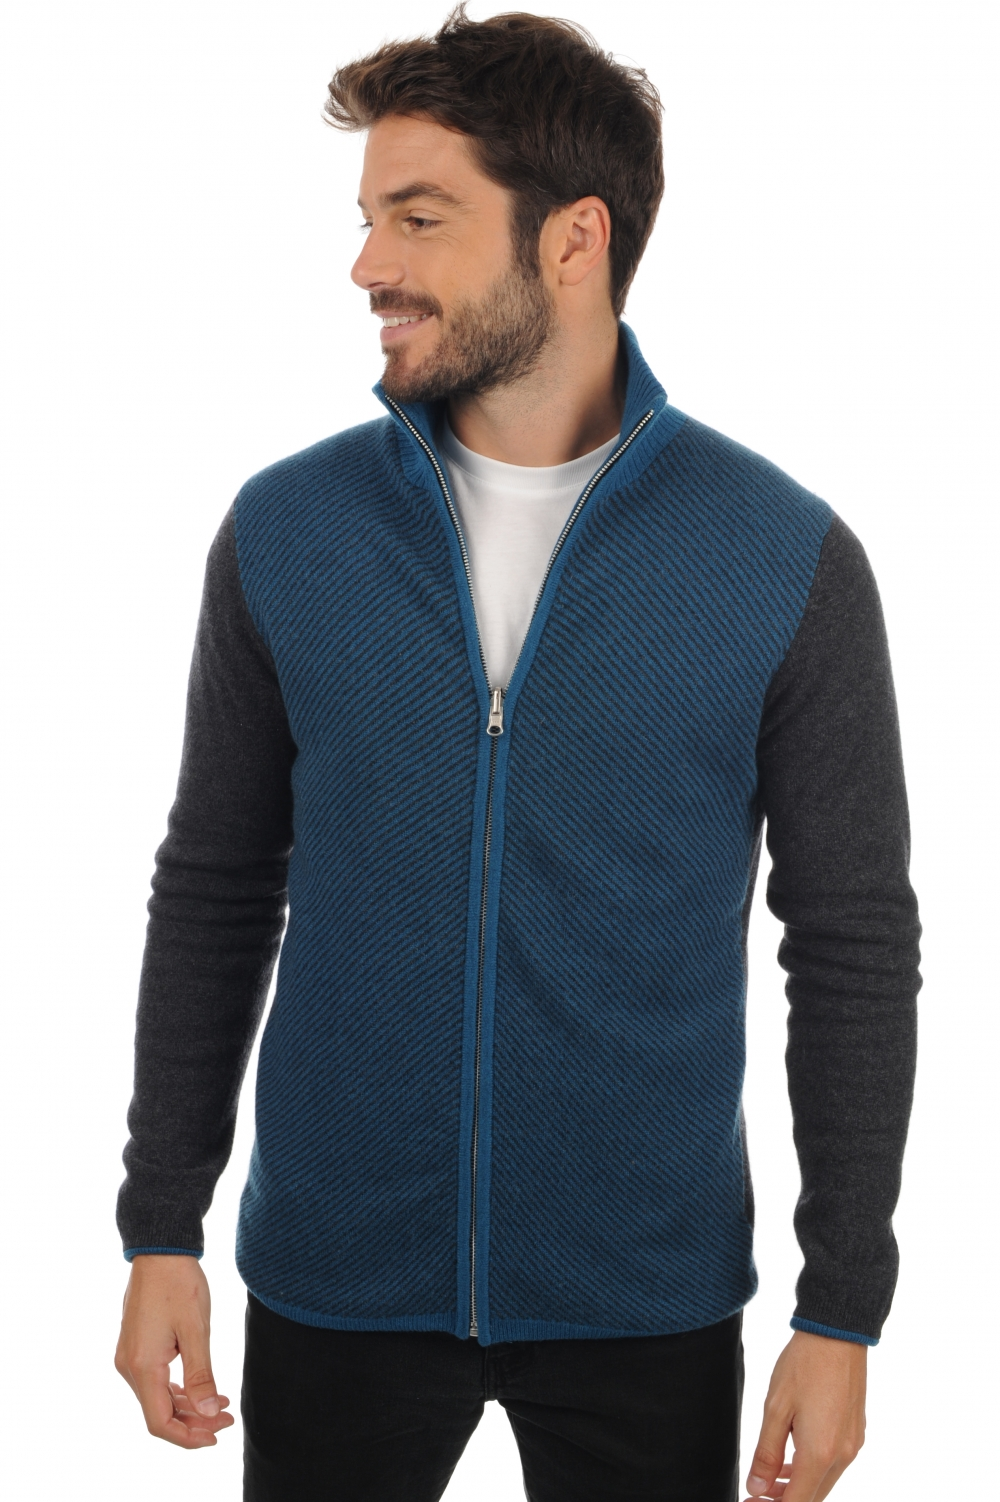 cachemire gilets debardeurs homme joey anthracite chine bleu canard l